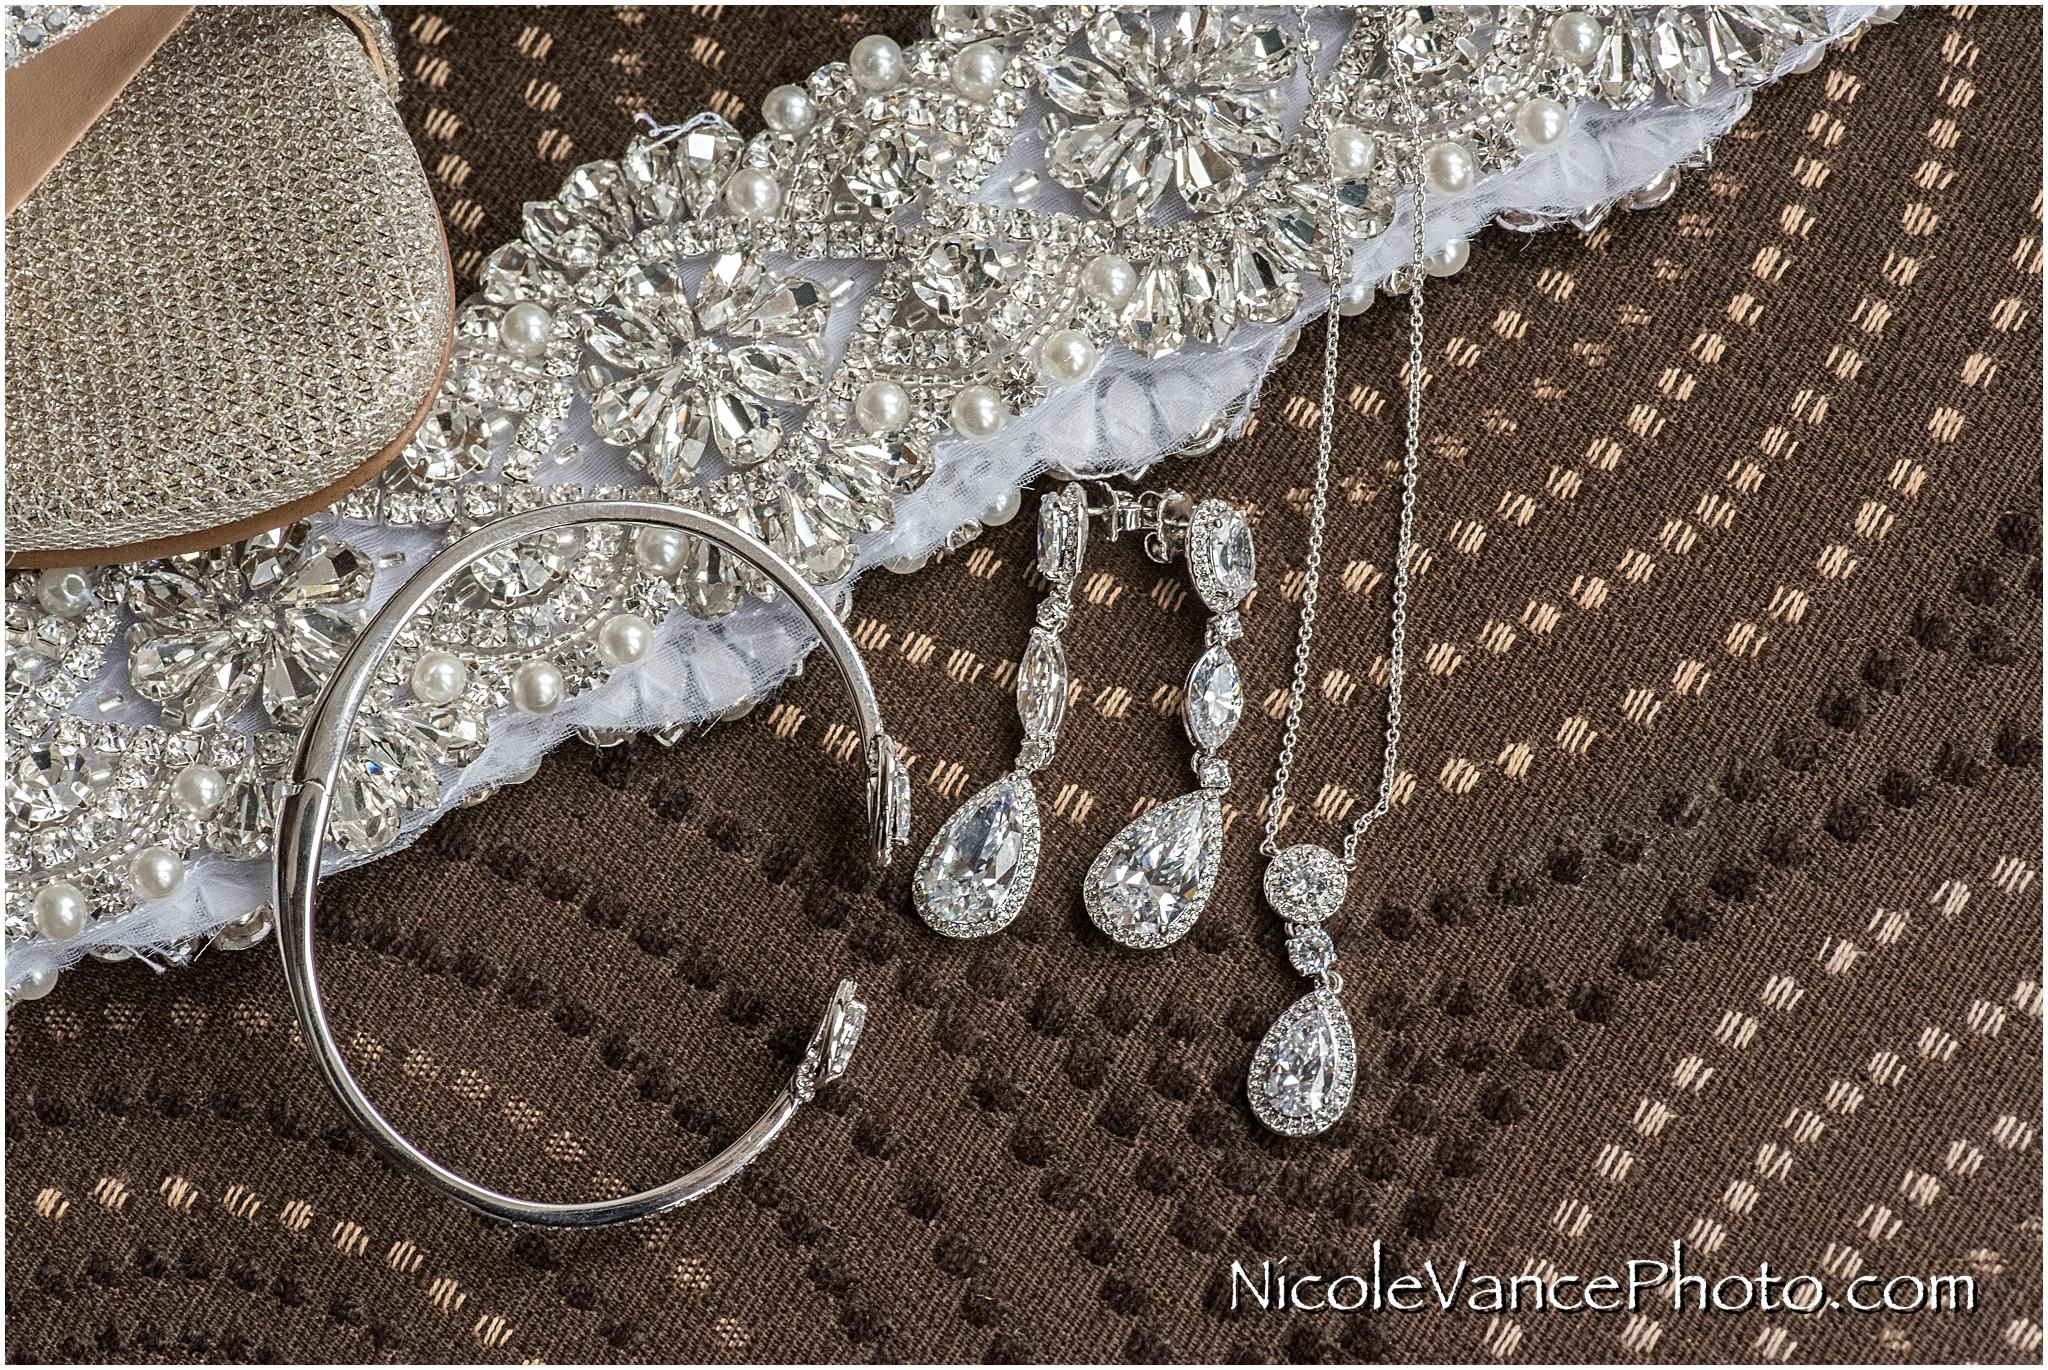 We couldn't get enough of this gorgeous bridal belt... the accessories match perfectly!